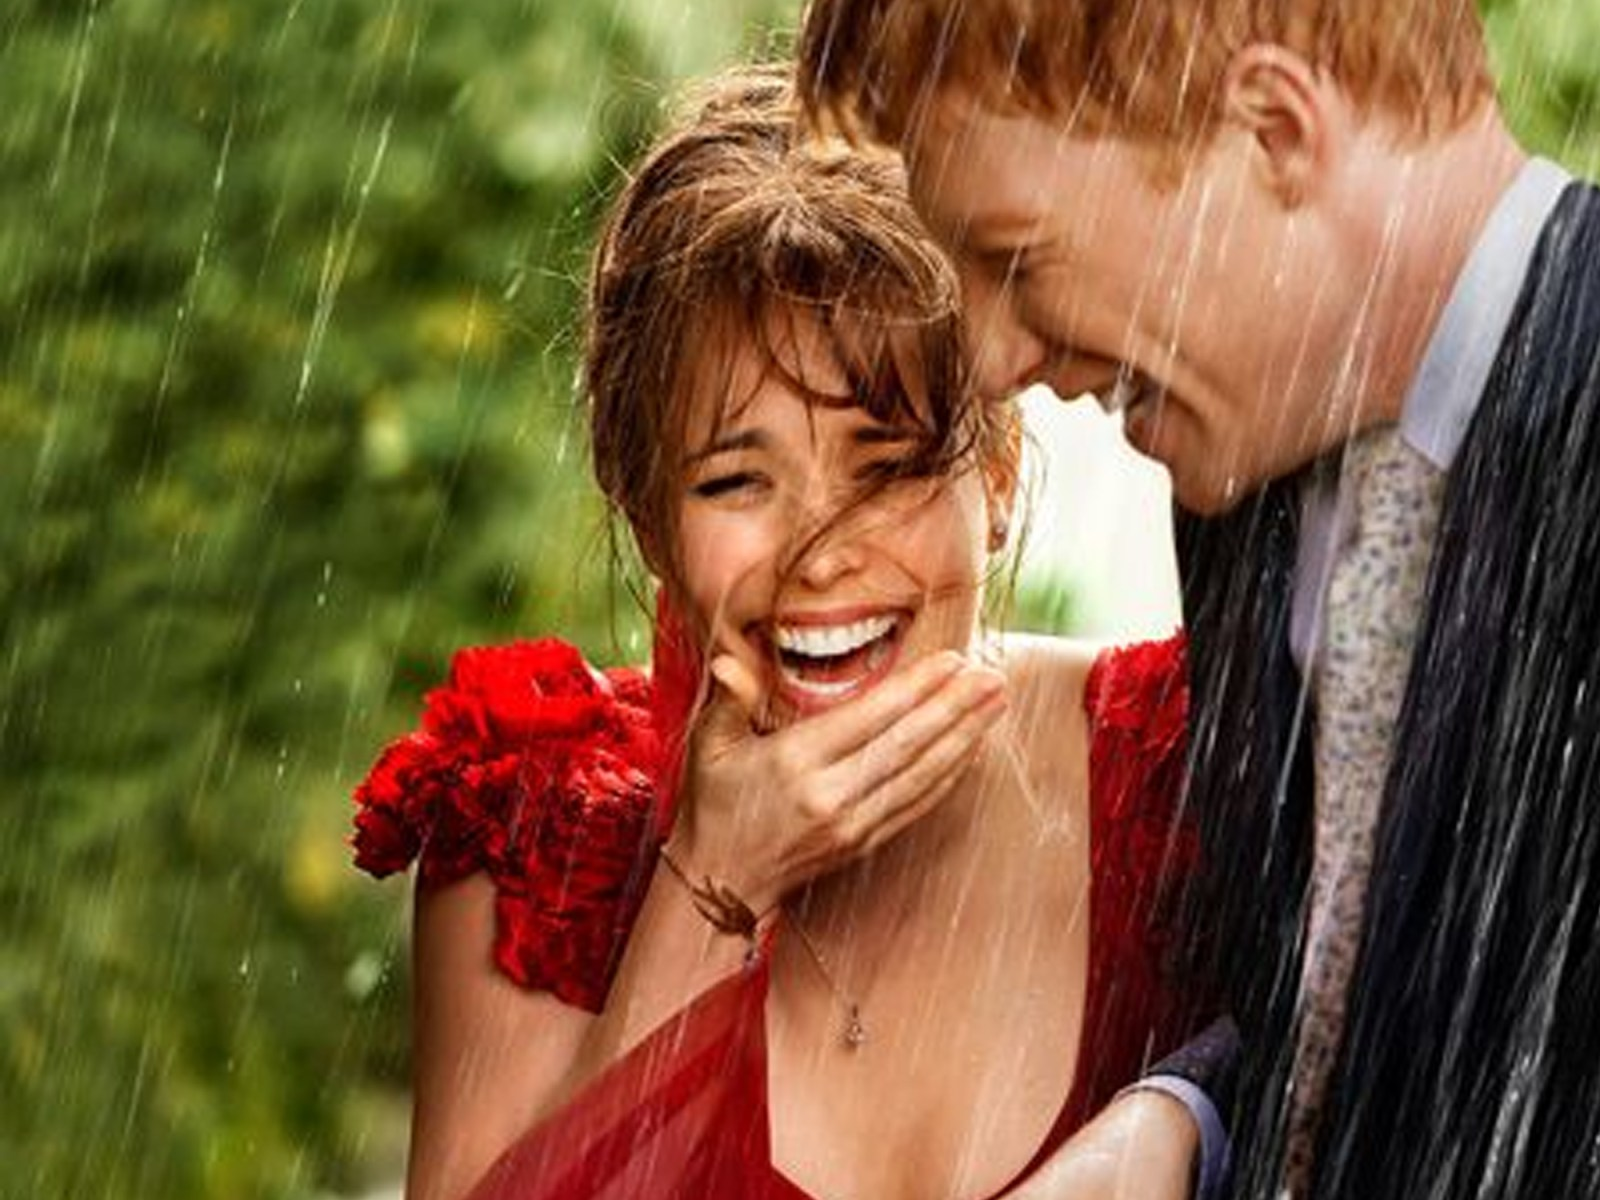 If you're a lover of romcom movies, and believe that all you want in life is to live a real romcom moment - well, don't. Here's a list of reasons why a romantic comedy, and all romance movies in general, are not telling to a true relationship.